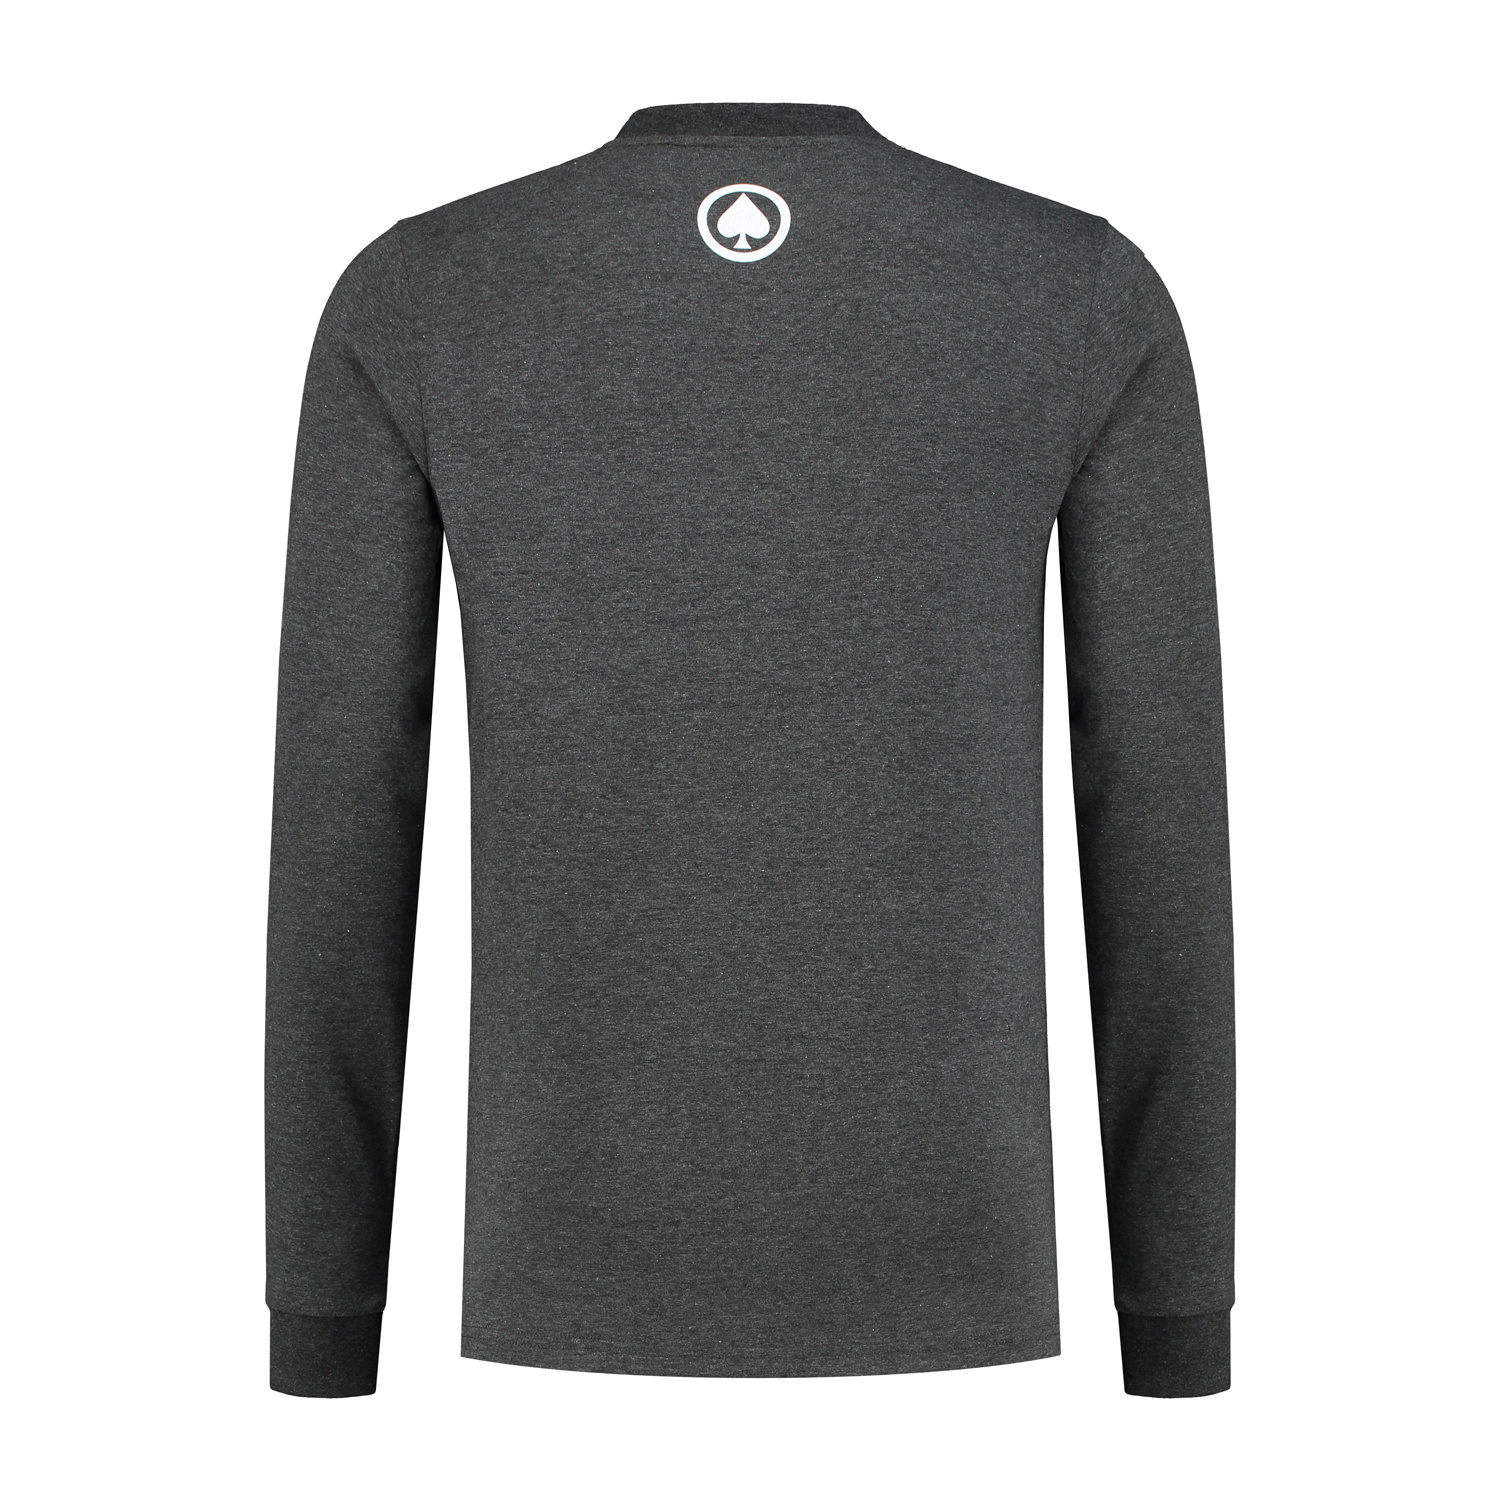 Confirm Brand T-shirt Long Sleeve  Adventure - Anthracite-3